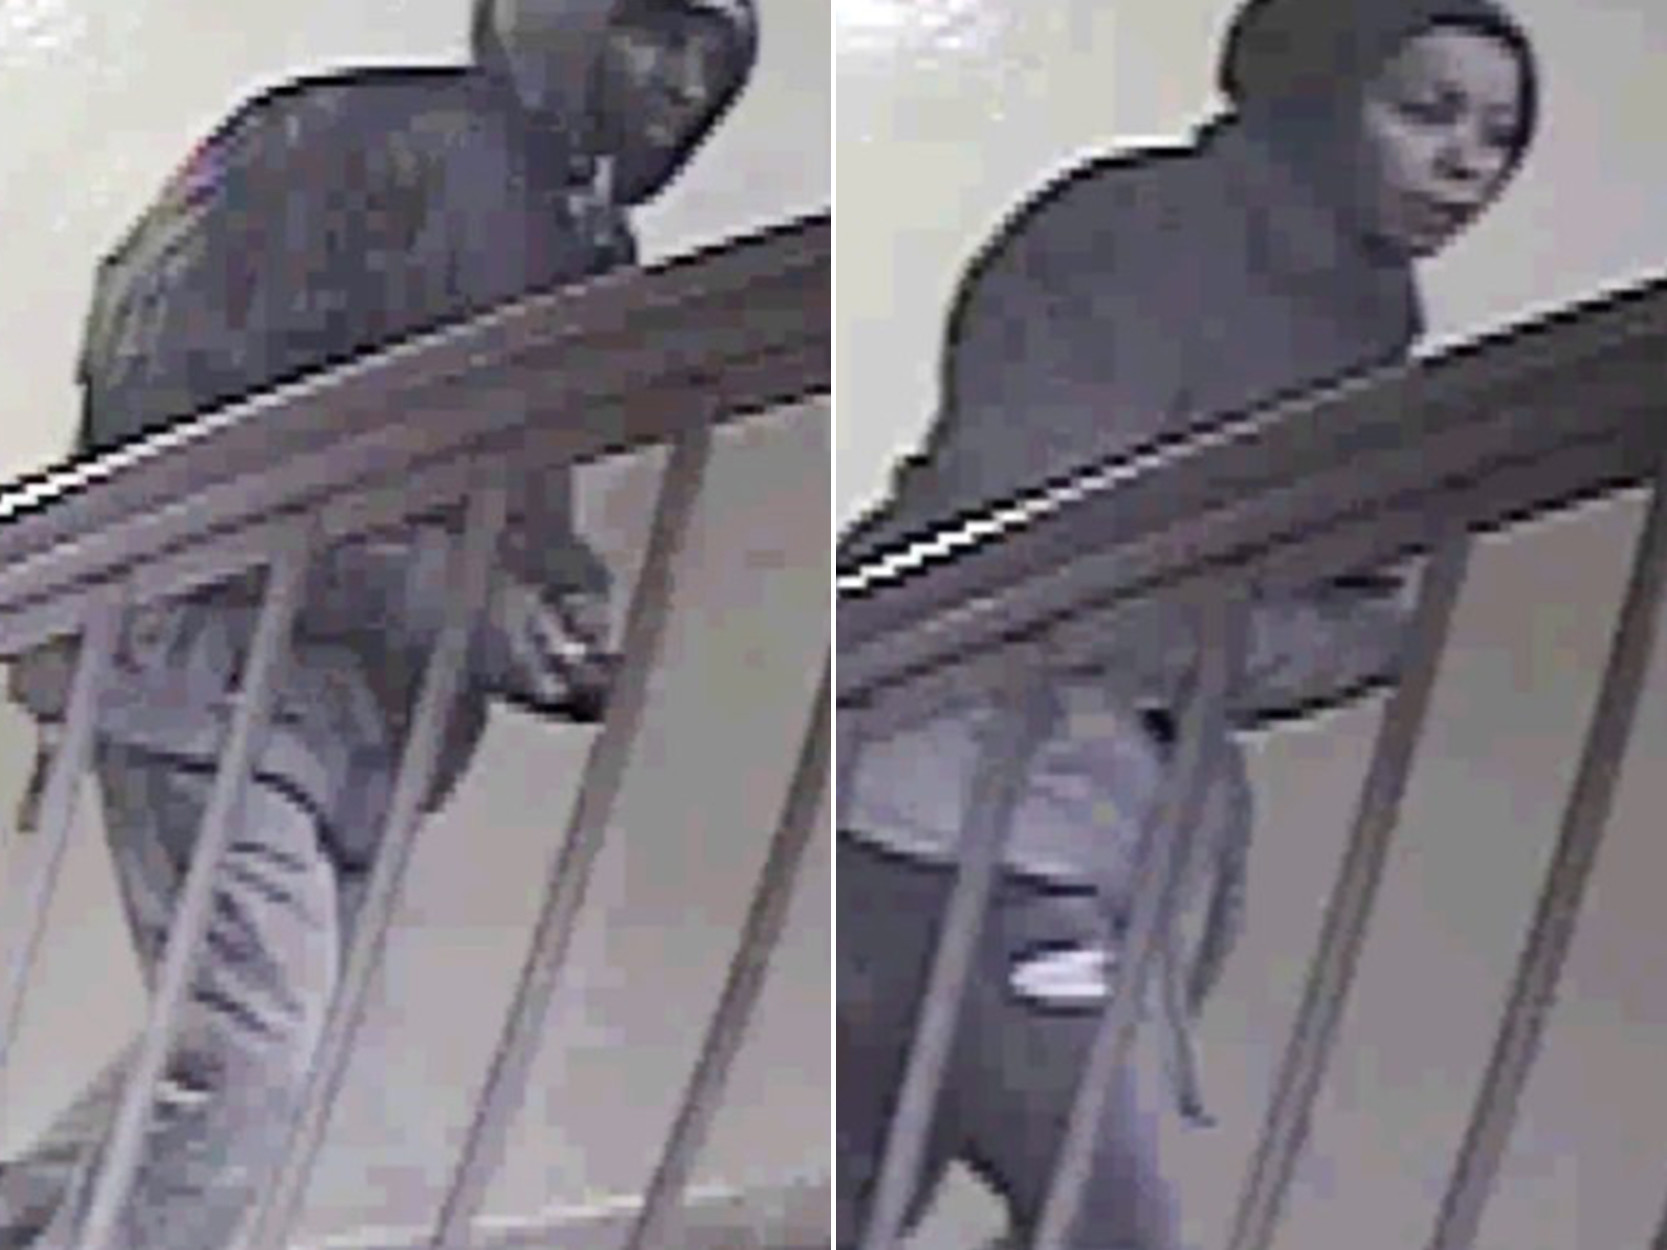 Man helps woman climb fire escape, steal Percocet from Bronx apartment: police news